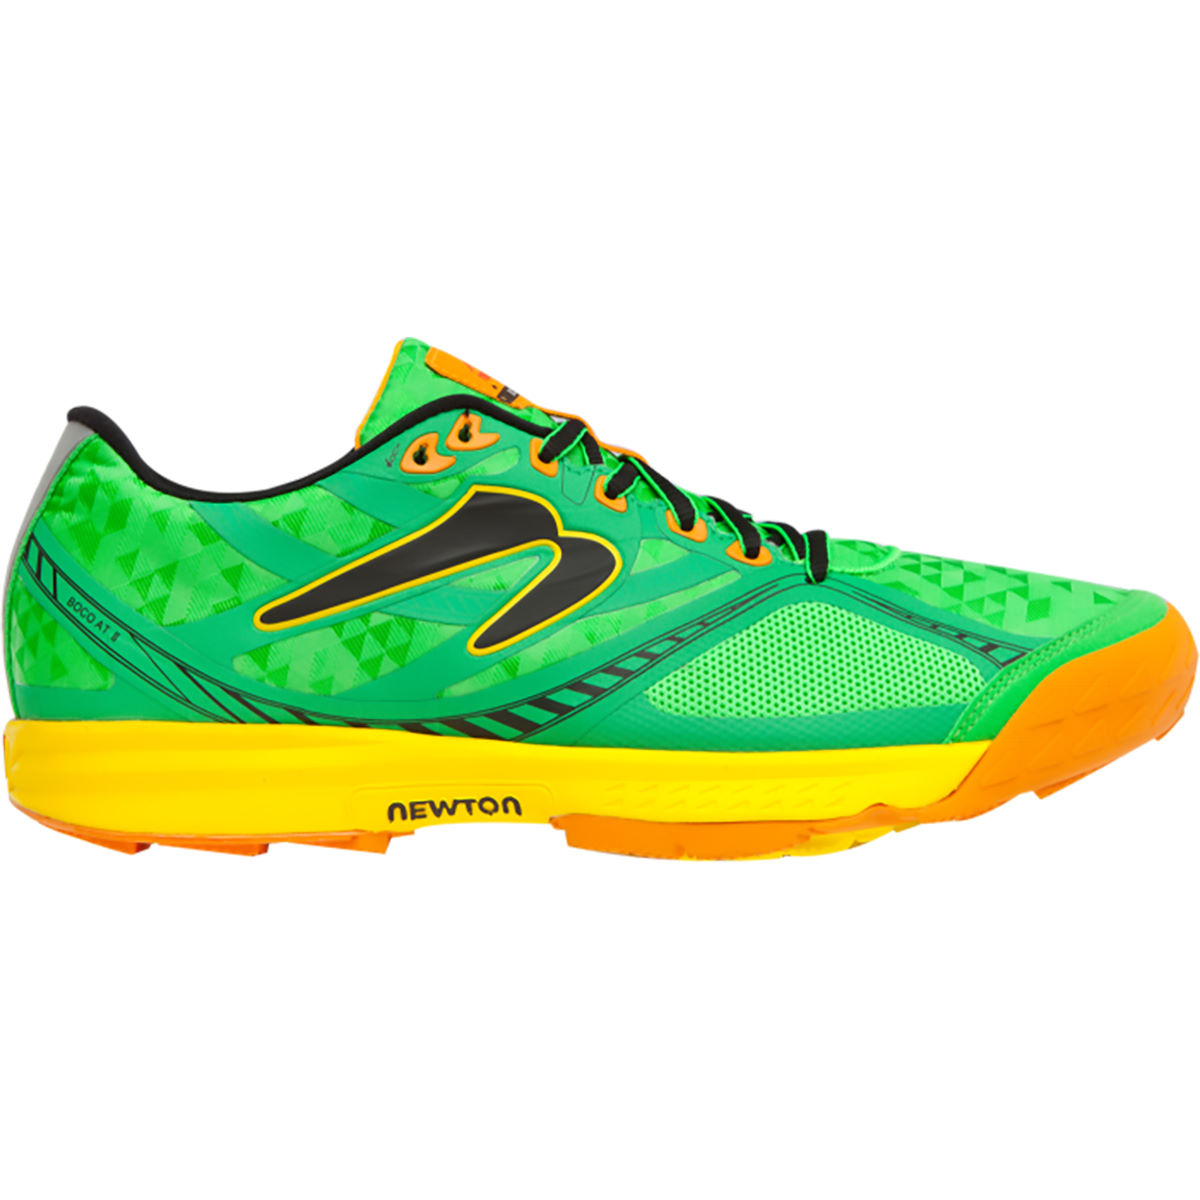 Chaussures Newton Running Boco AT II (AH16) - 8 UK Green/Yellow Chaussures de running trail